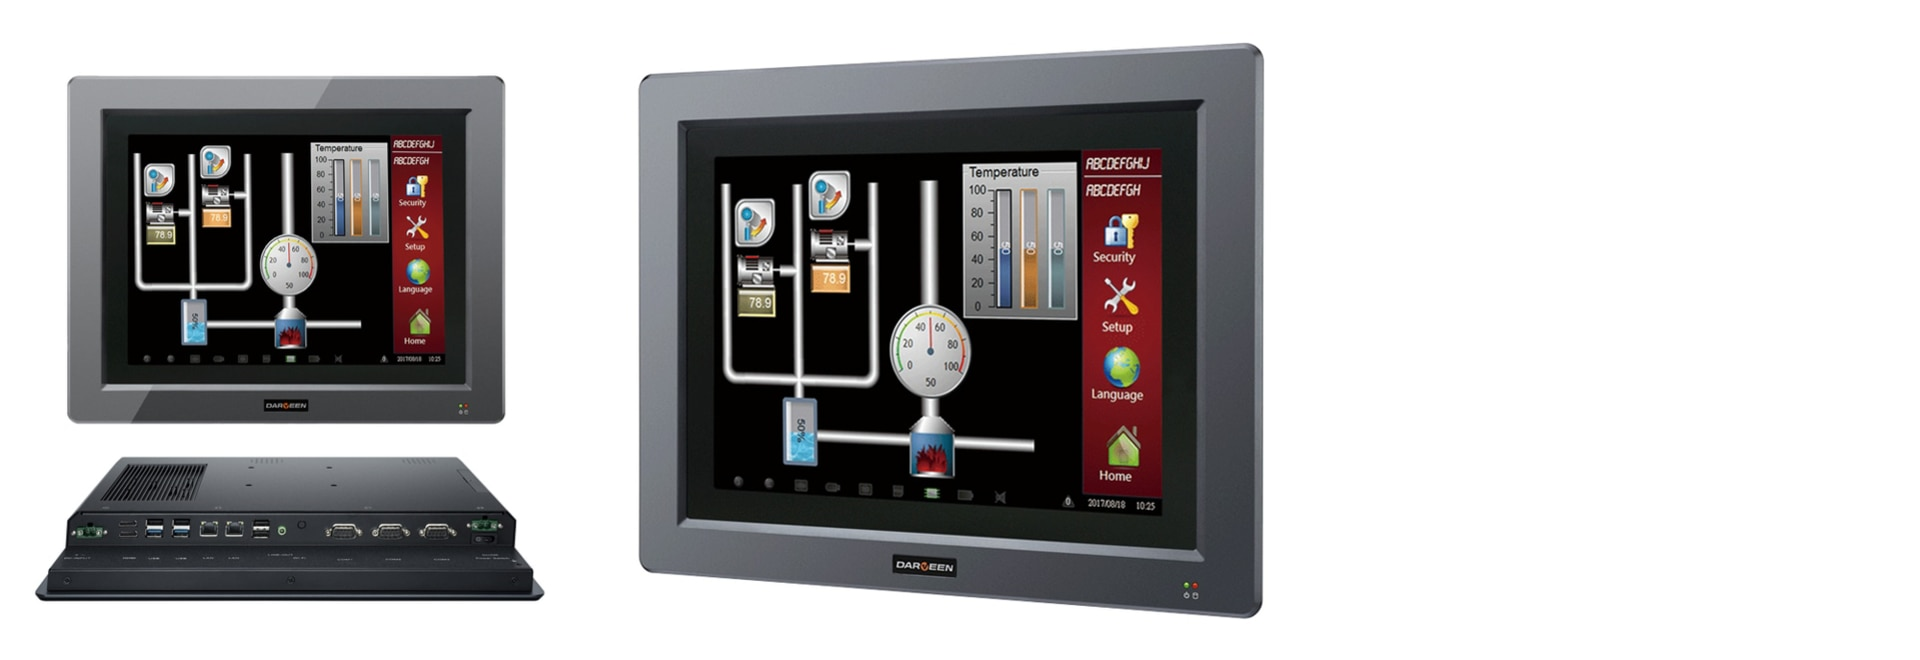 Darveen launched a new industrial-grade HMI computer DPC-5000 Series